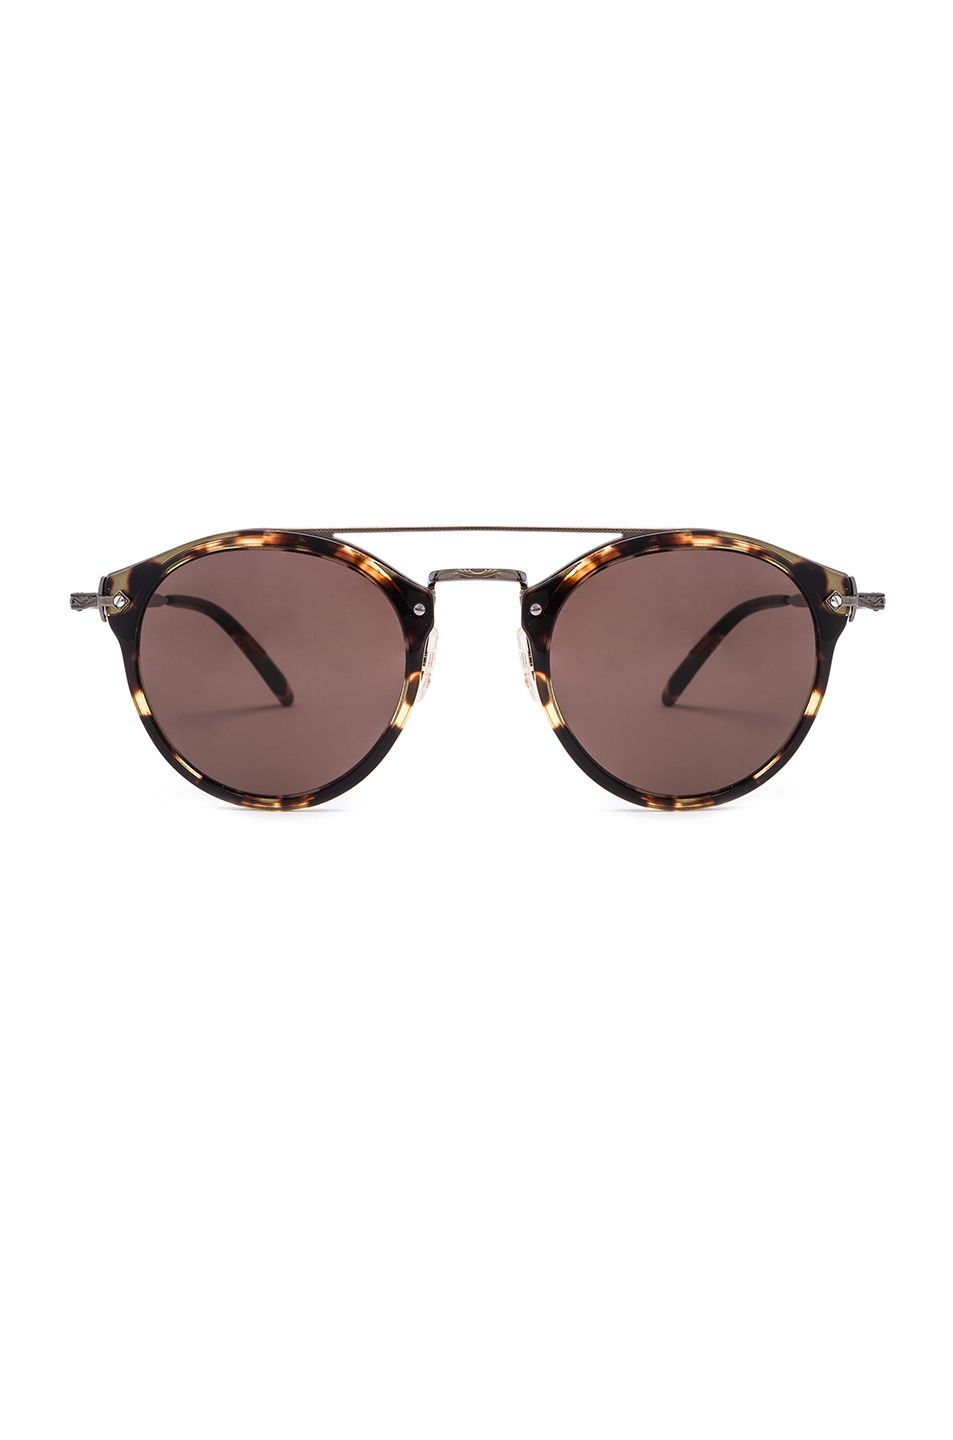 2eeb7413f0 Oliver Peoples Remick Sunglasses in Vintage & Antique Gold | FWRD ...